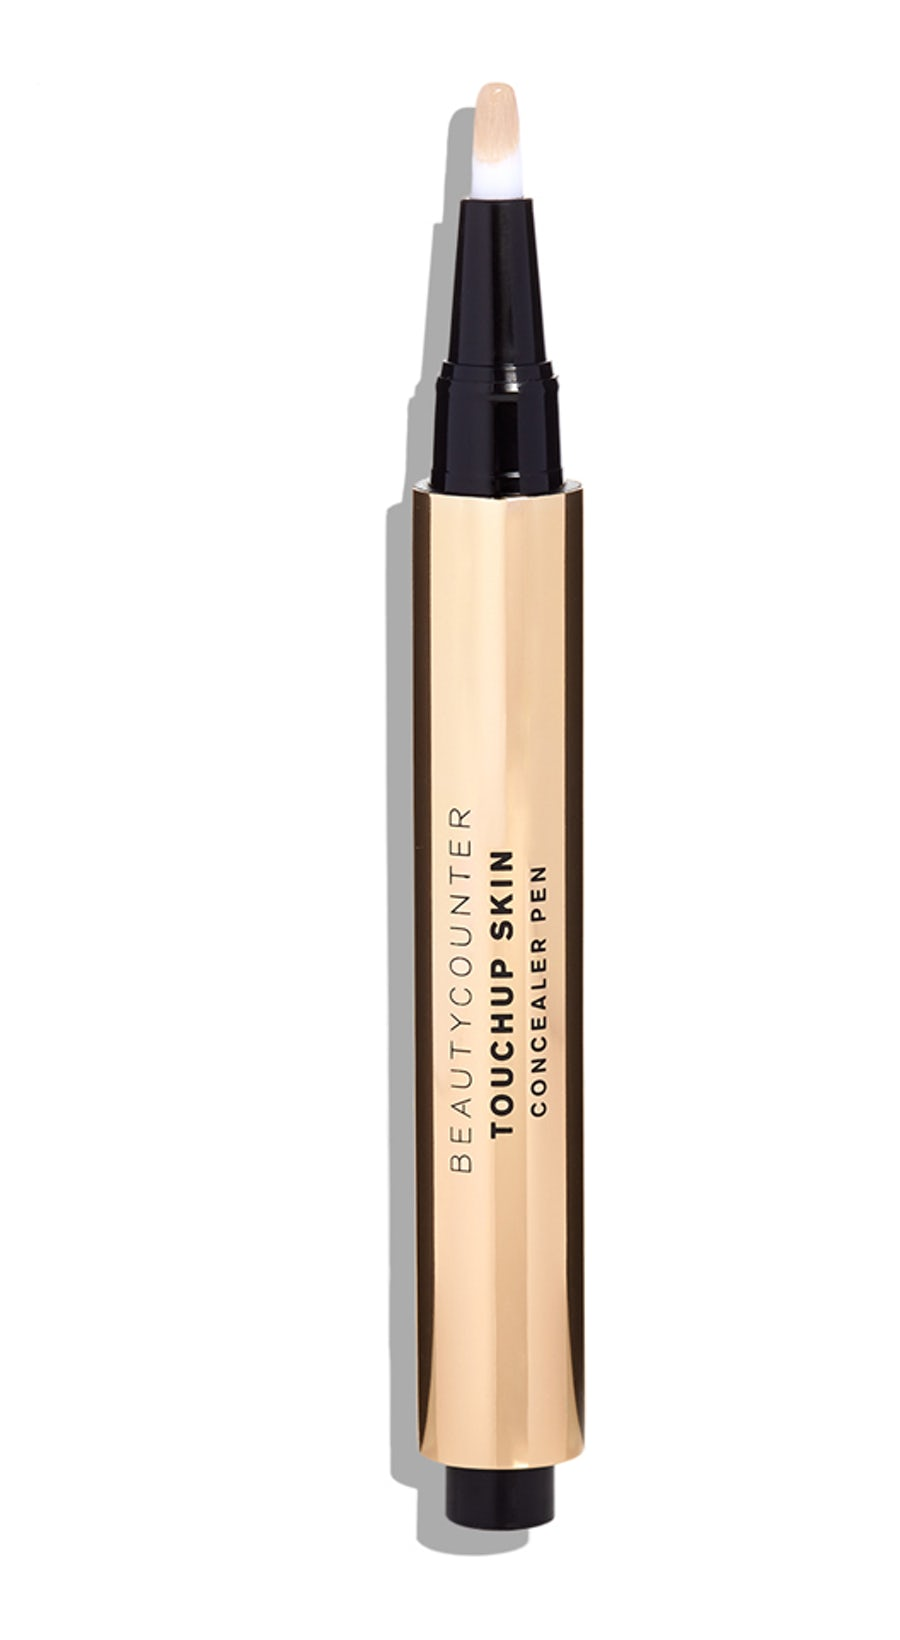 Touchup Skin Concealer Pen in Fair